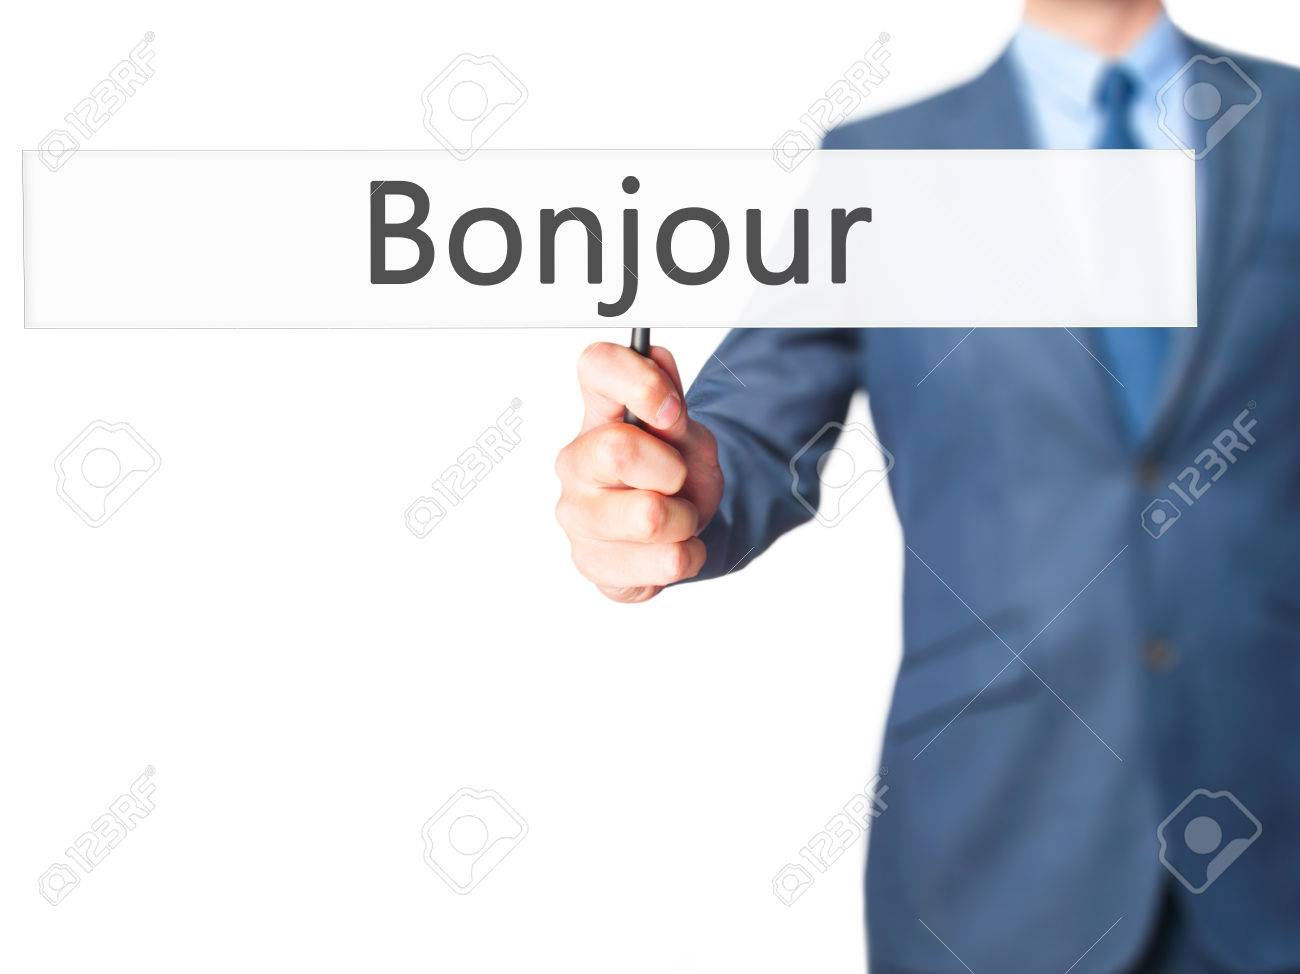 Bonjour Good Morning In French Businessman Hand Holding Sign